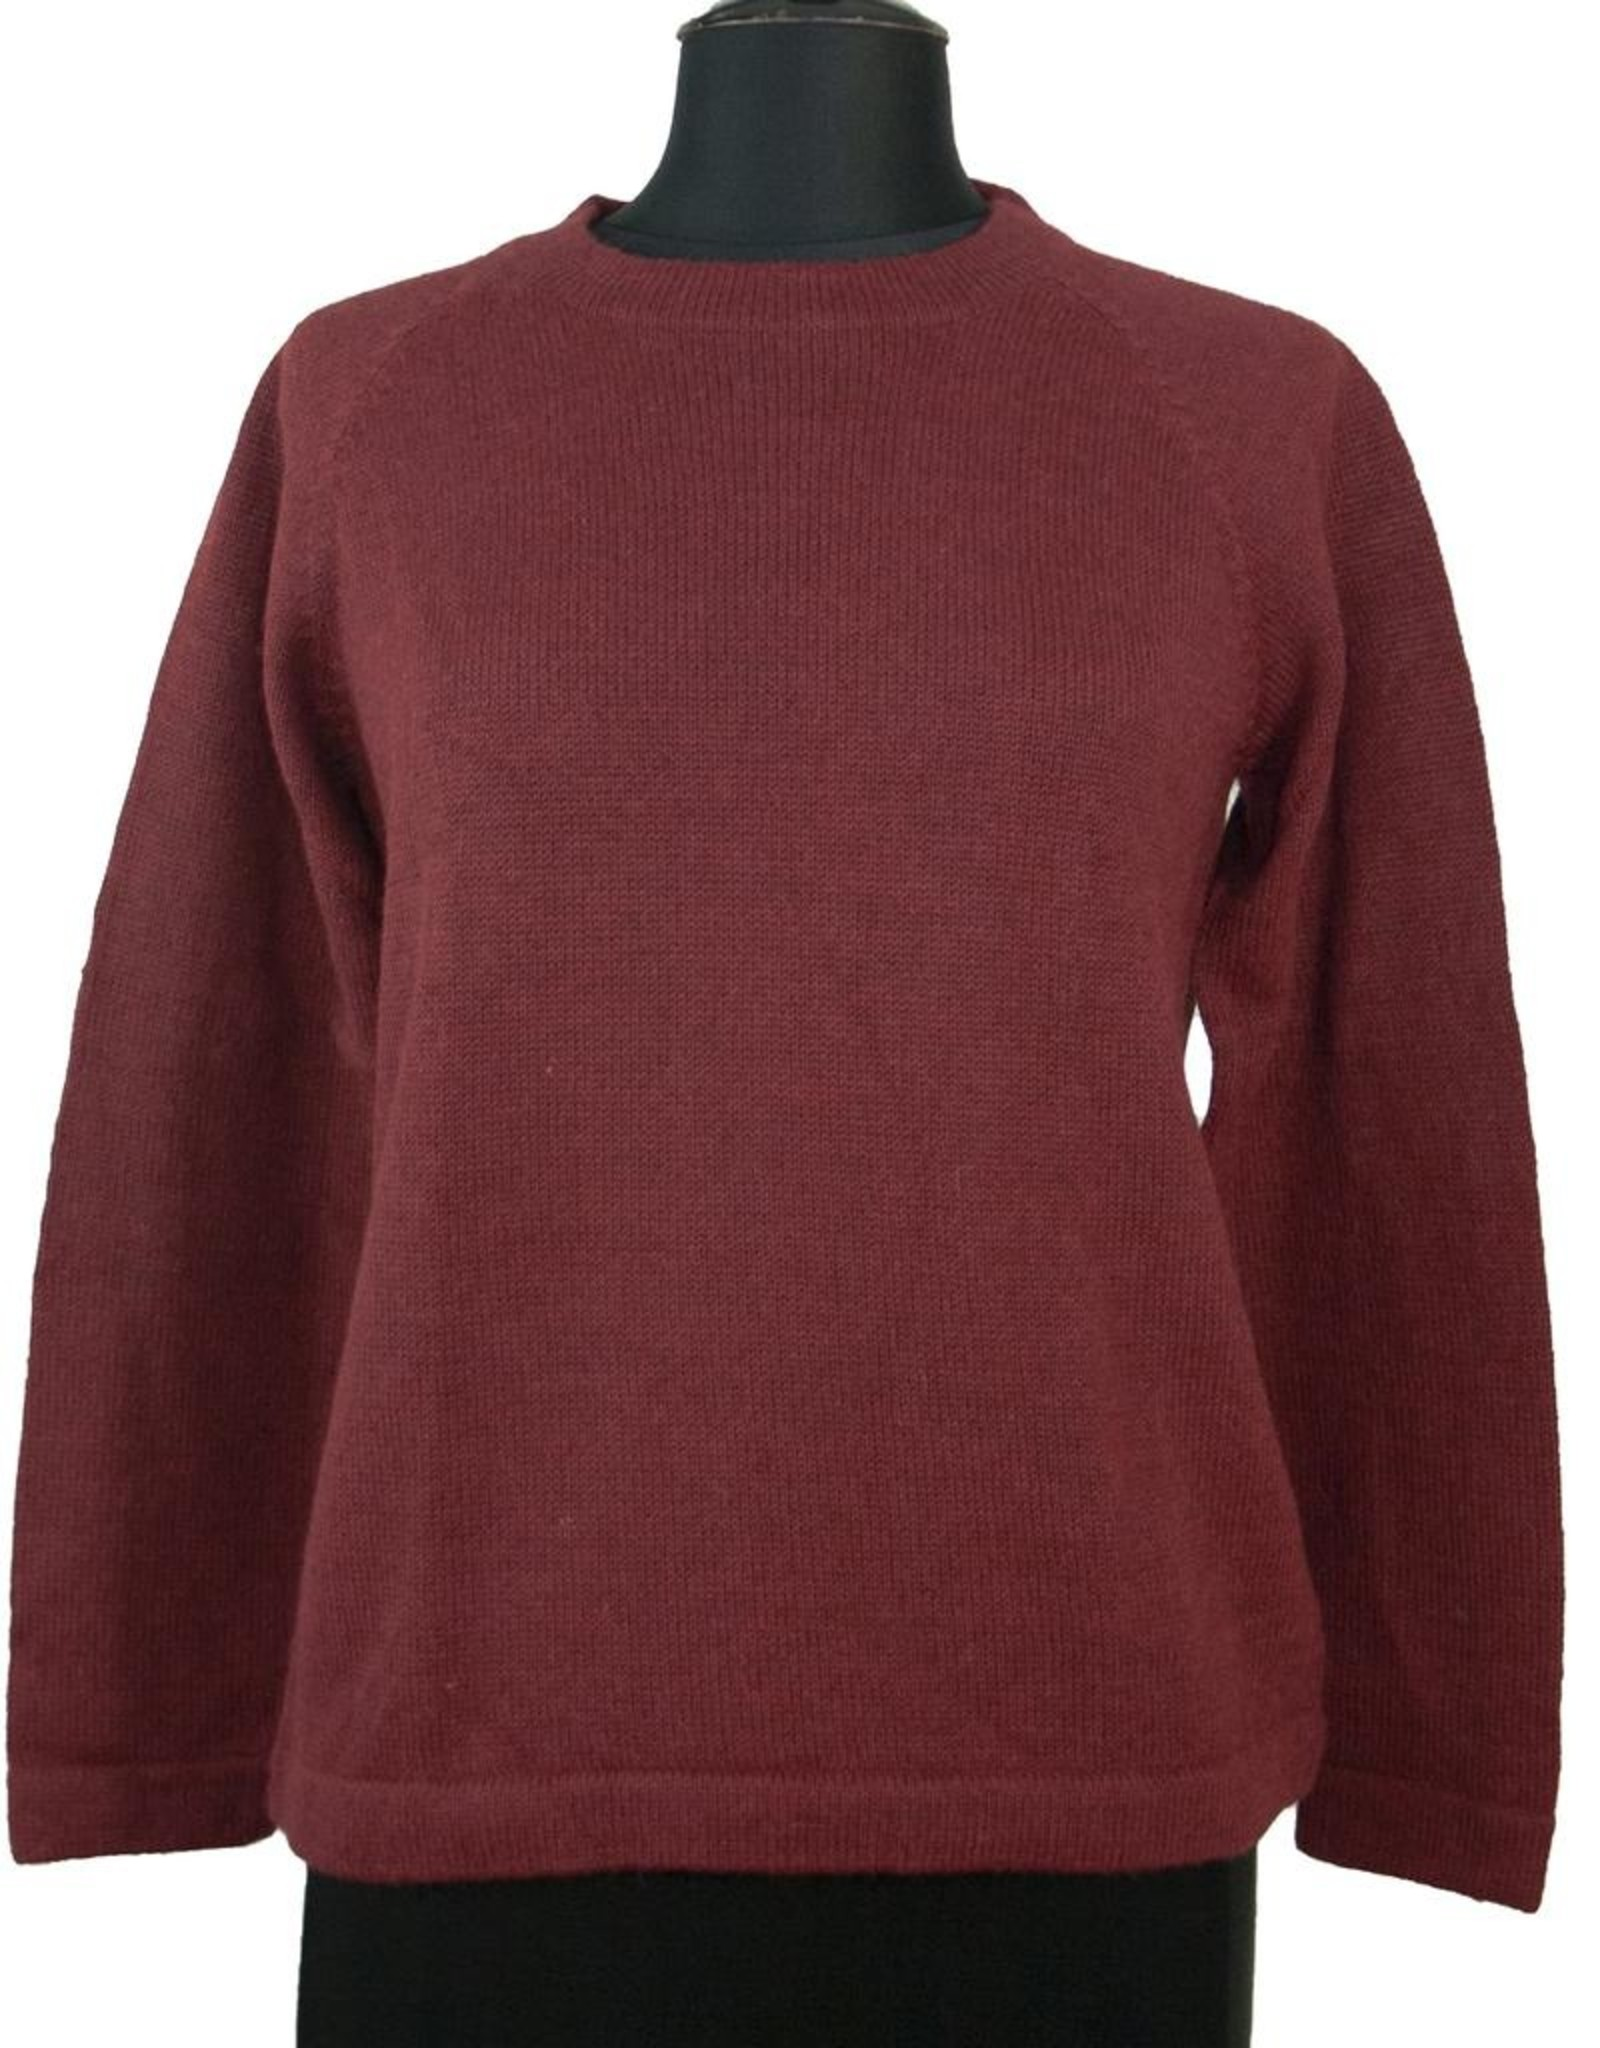 The Sweater Venture Alpaca Crew Neck Pullover